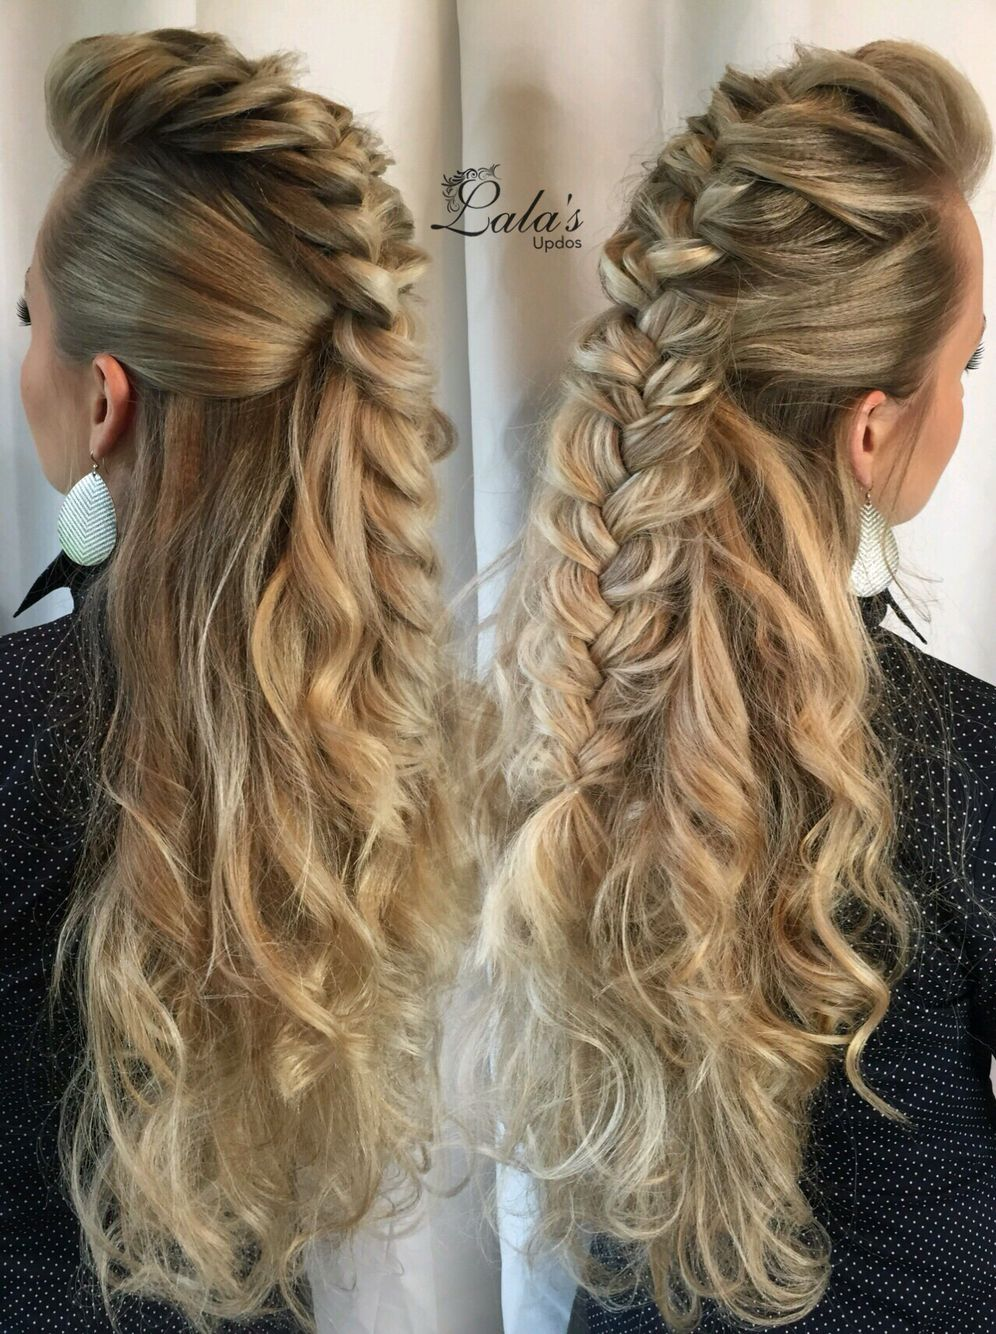 Braided mohawk hairstyles on pinterest explore ideas with